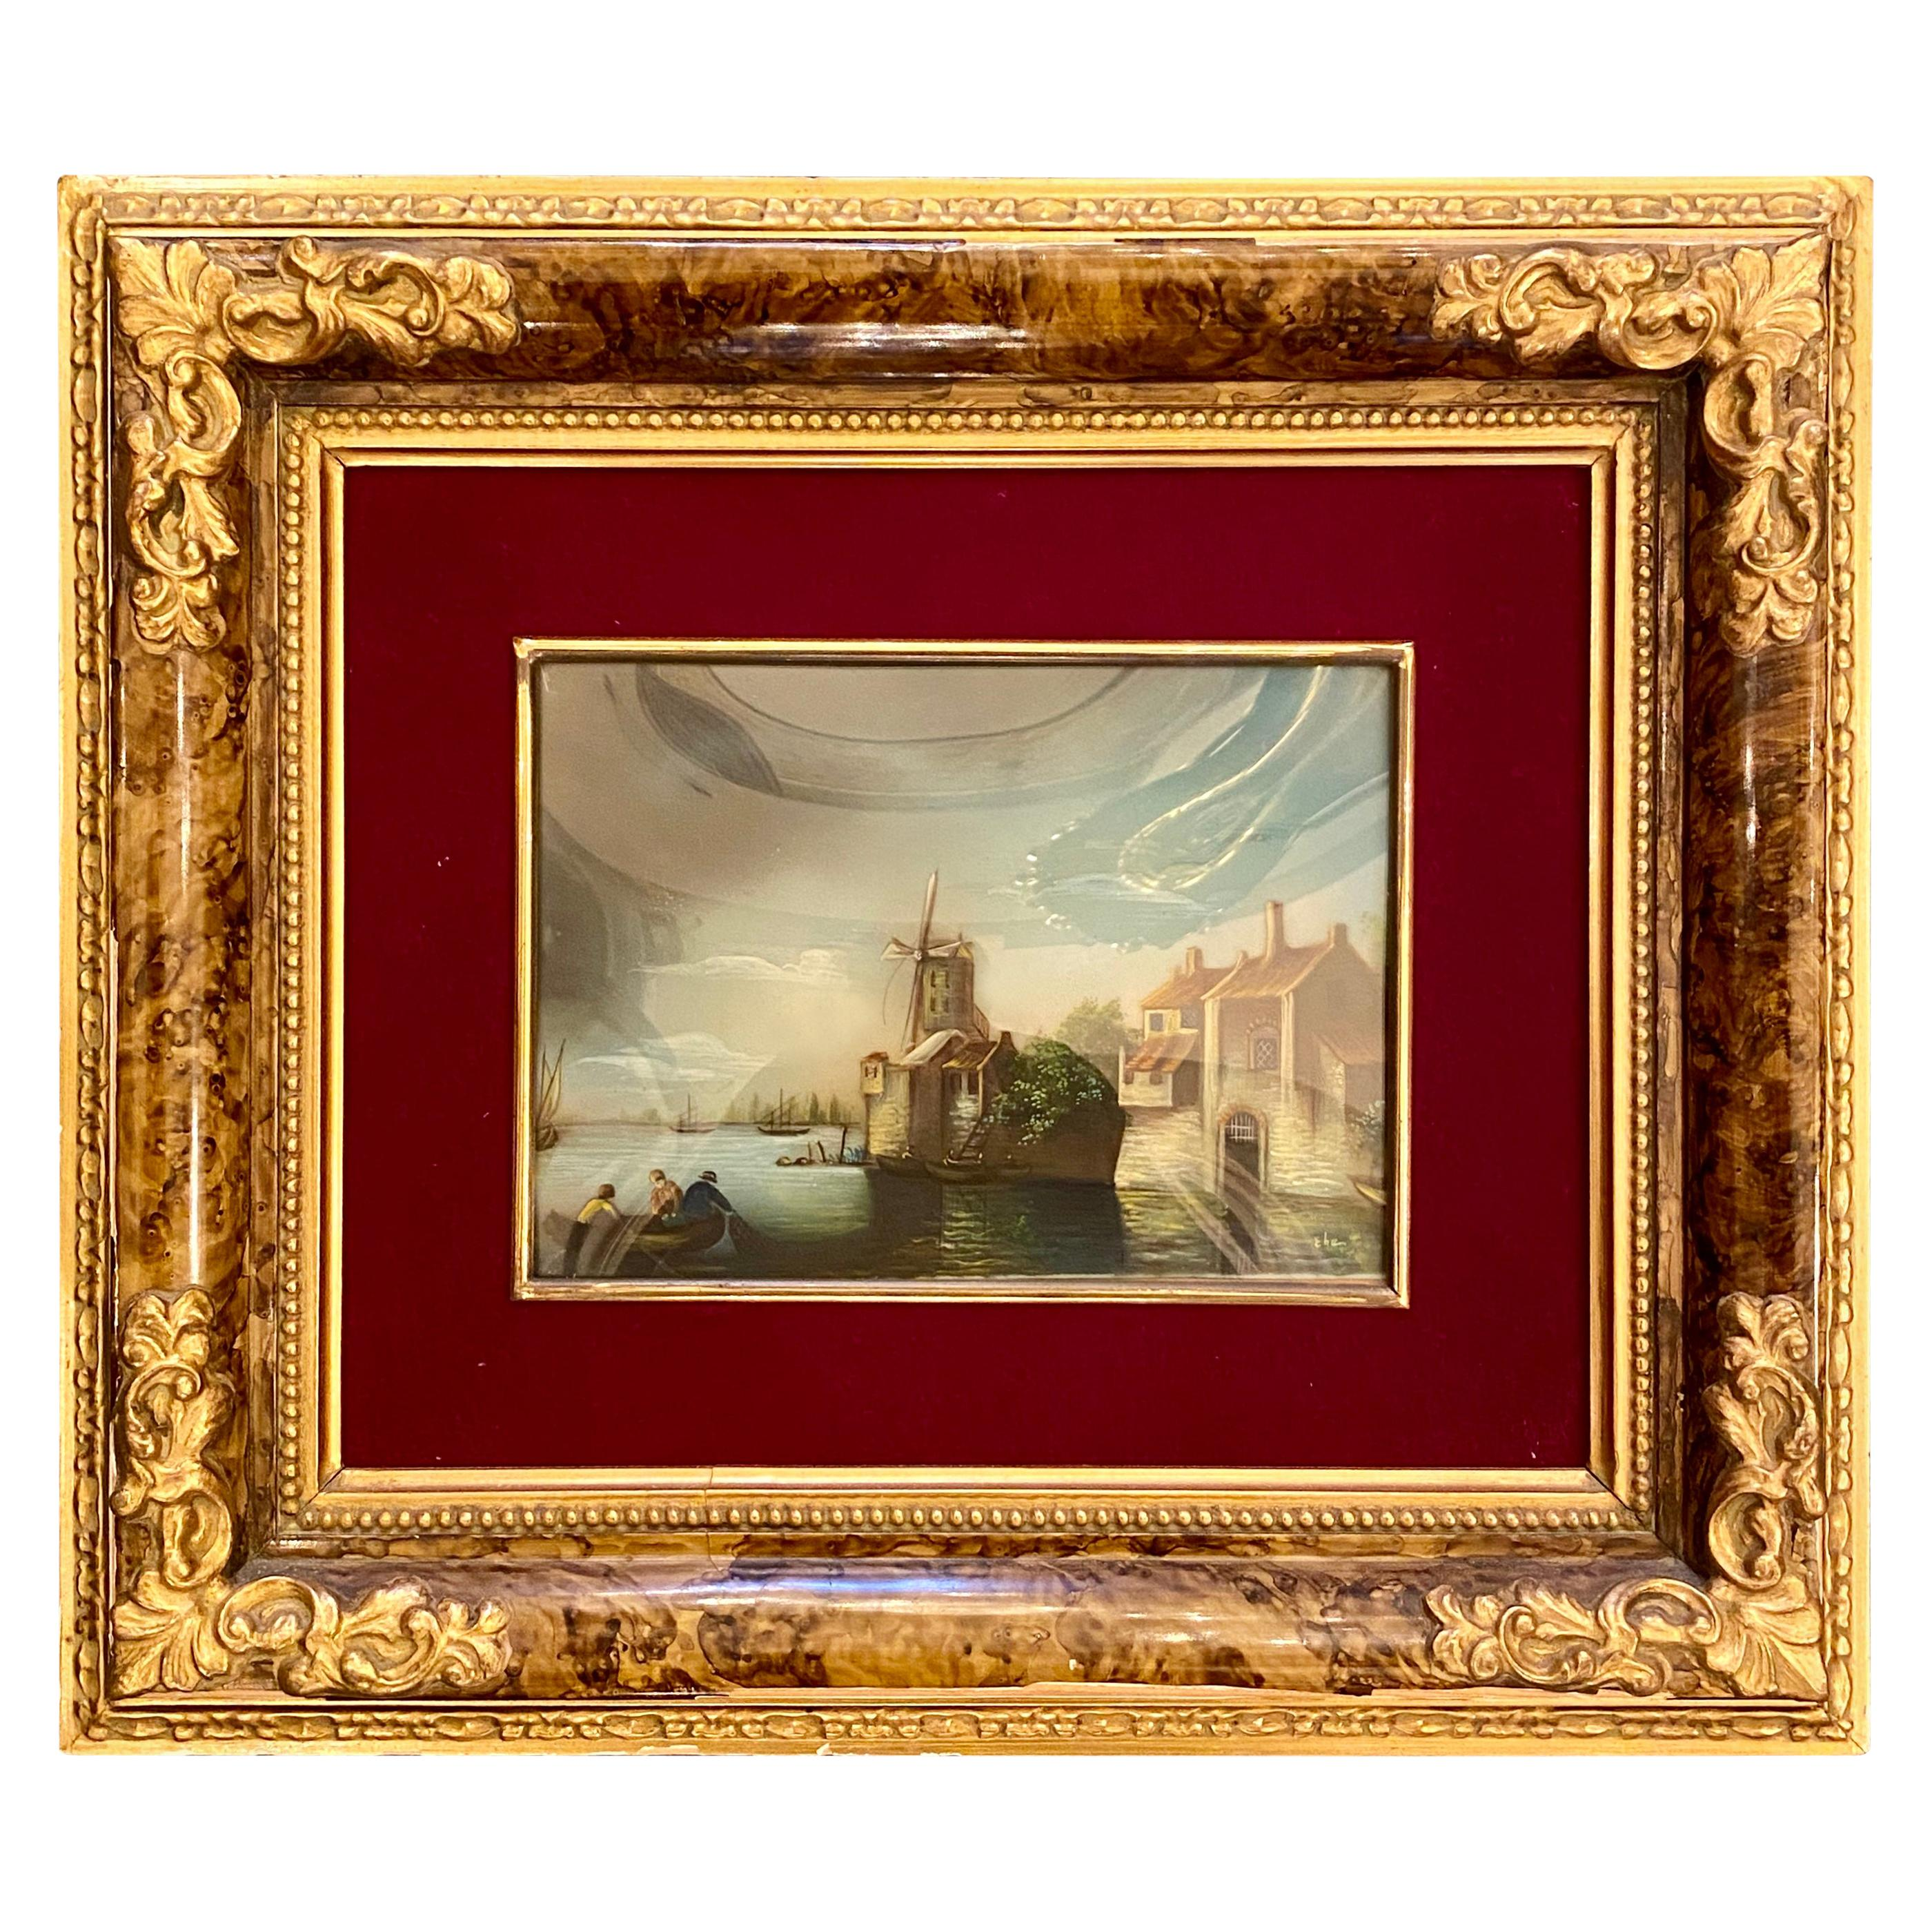 Antique Dutch Framed Goache Watercolor on Card Harbor Scene Painting circa 1860s